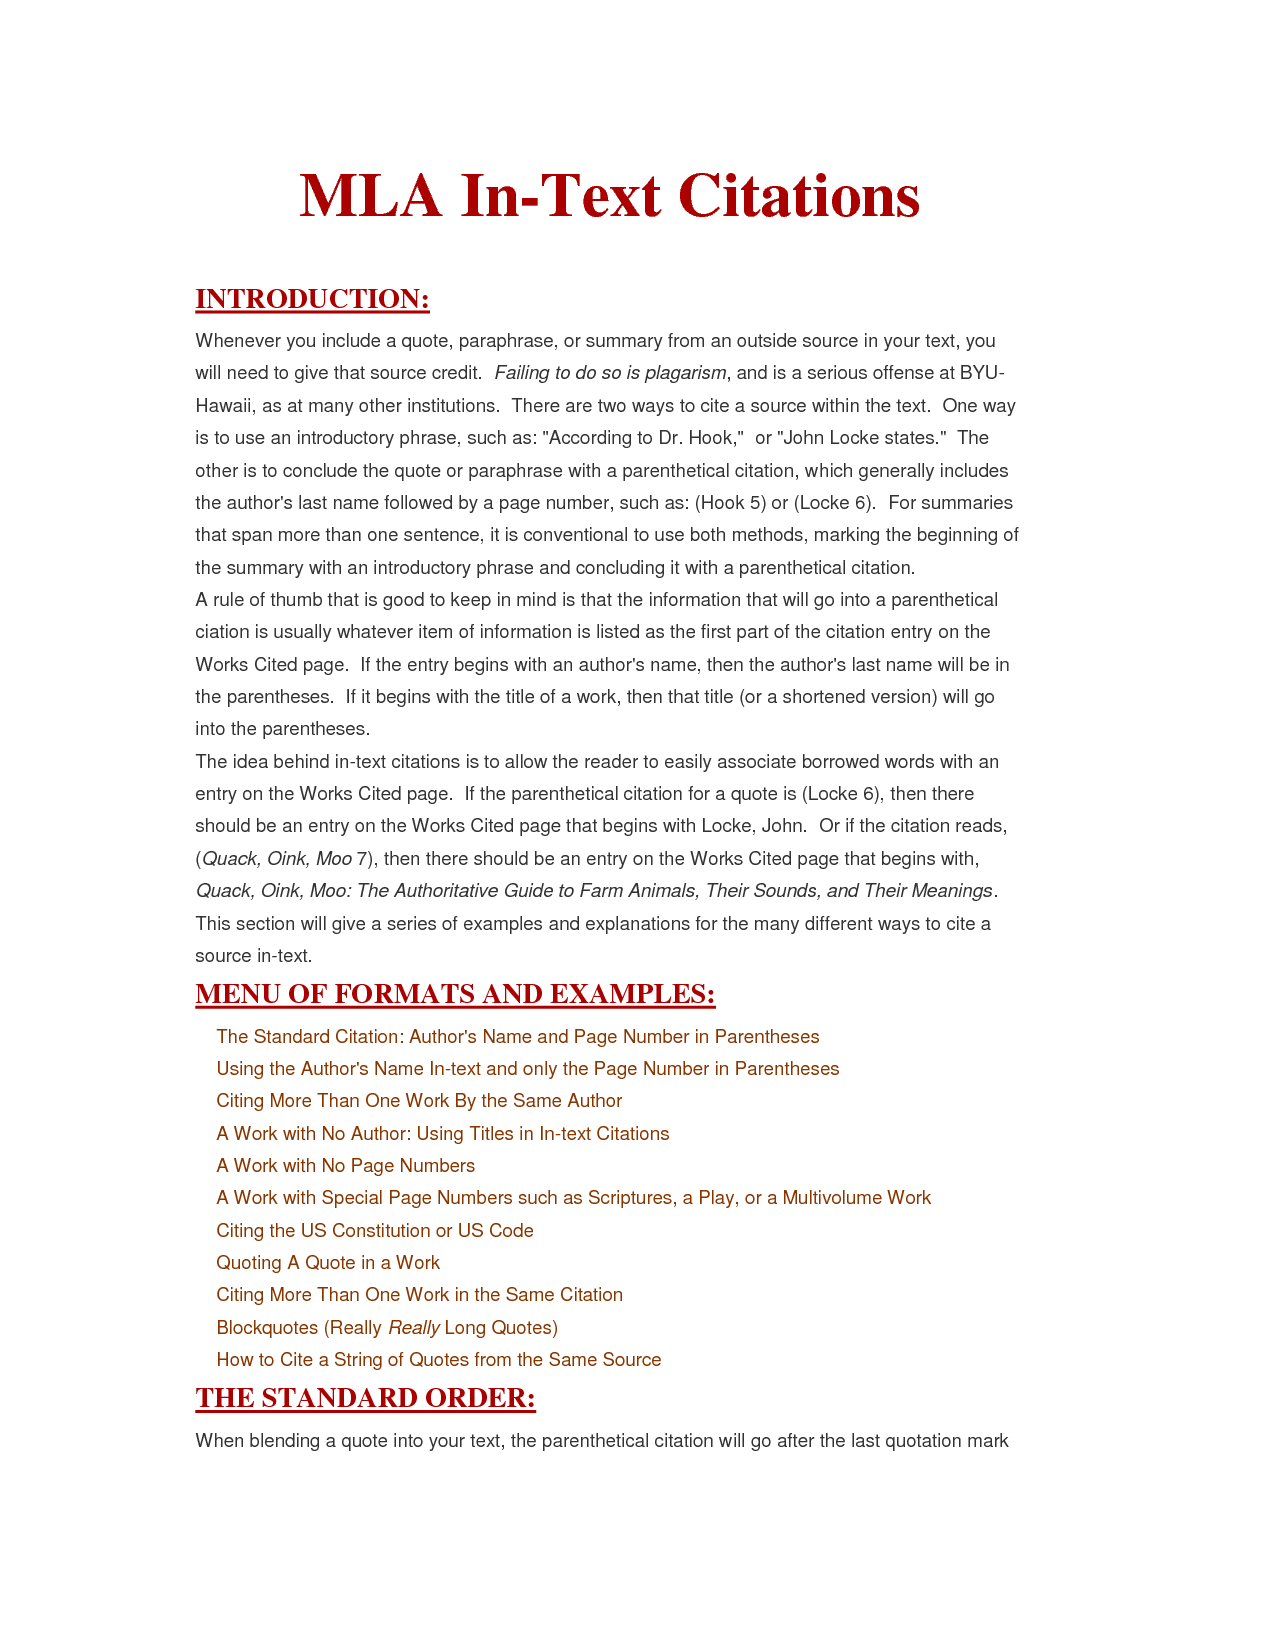 mla citation format dissertation mla reference phd thesis pdf central america internet